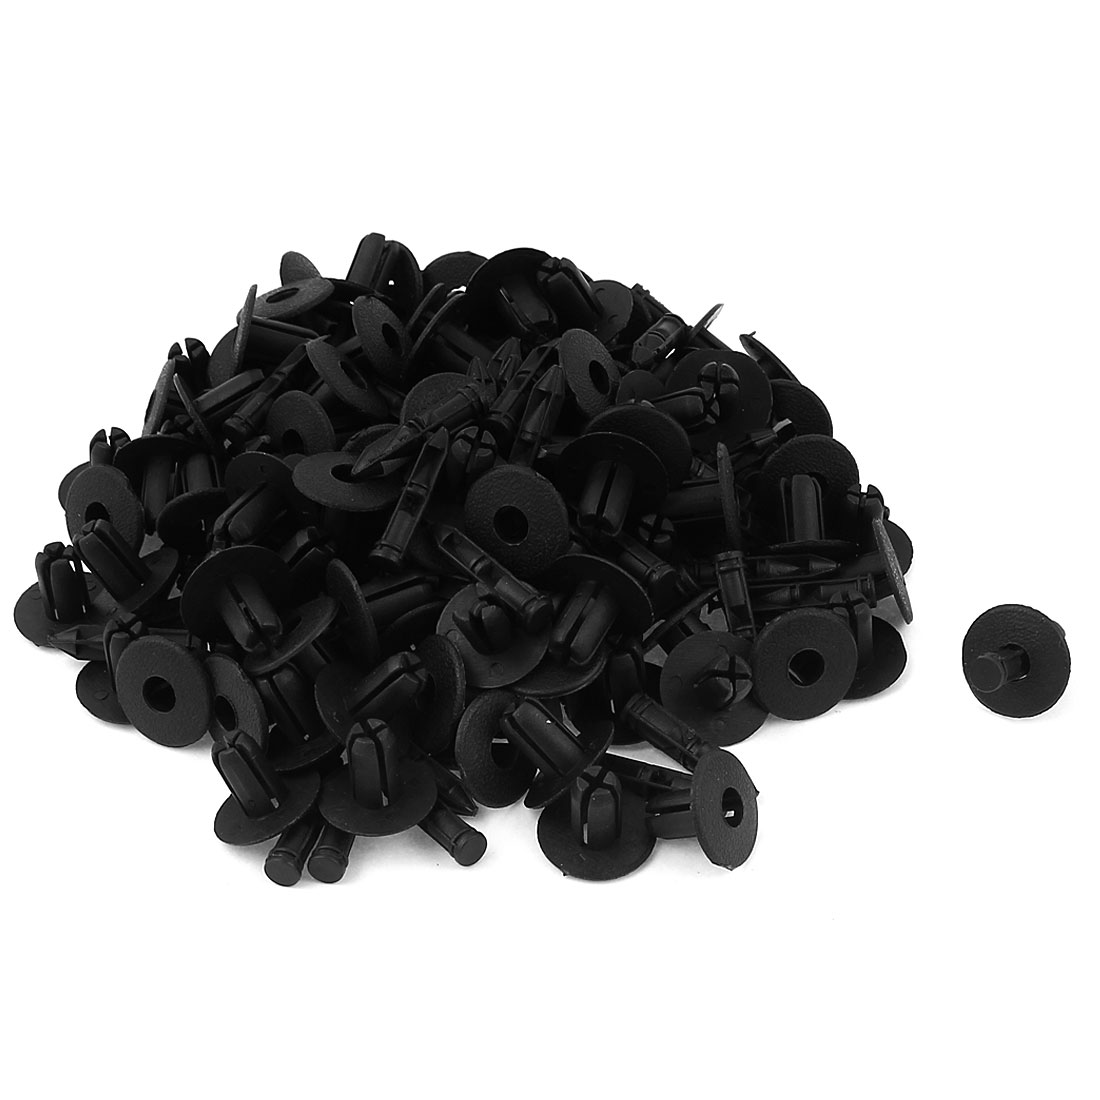 100 Pcs Plastic Rivet Fastener Expanding Clip Black Replacement 7mm